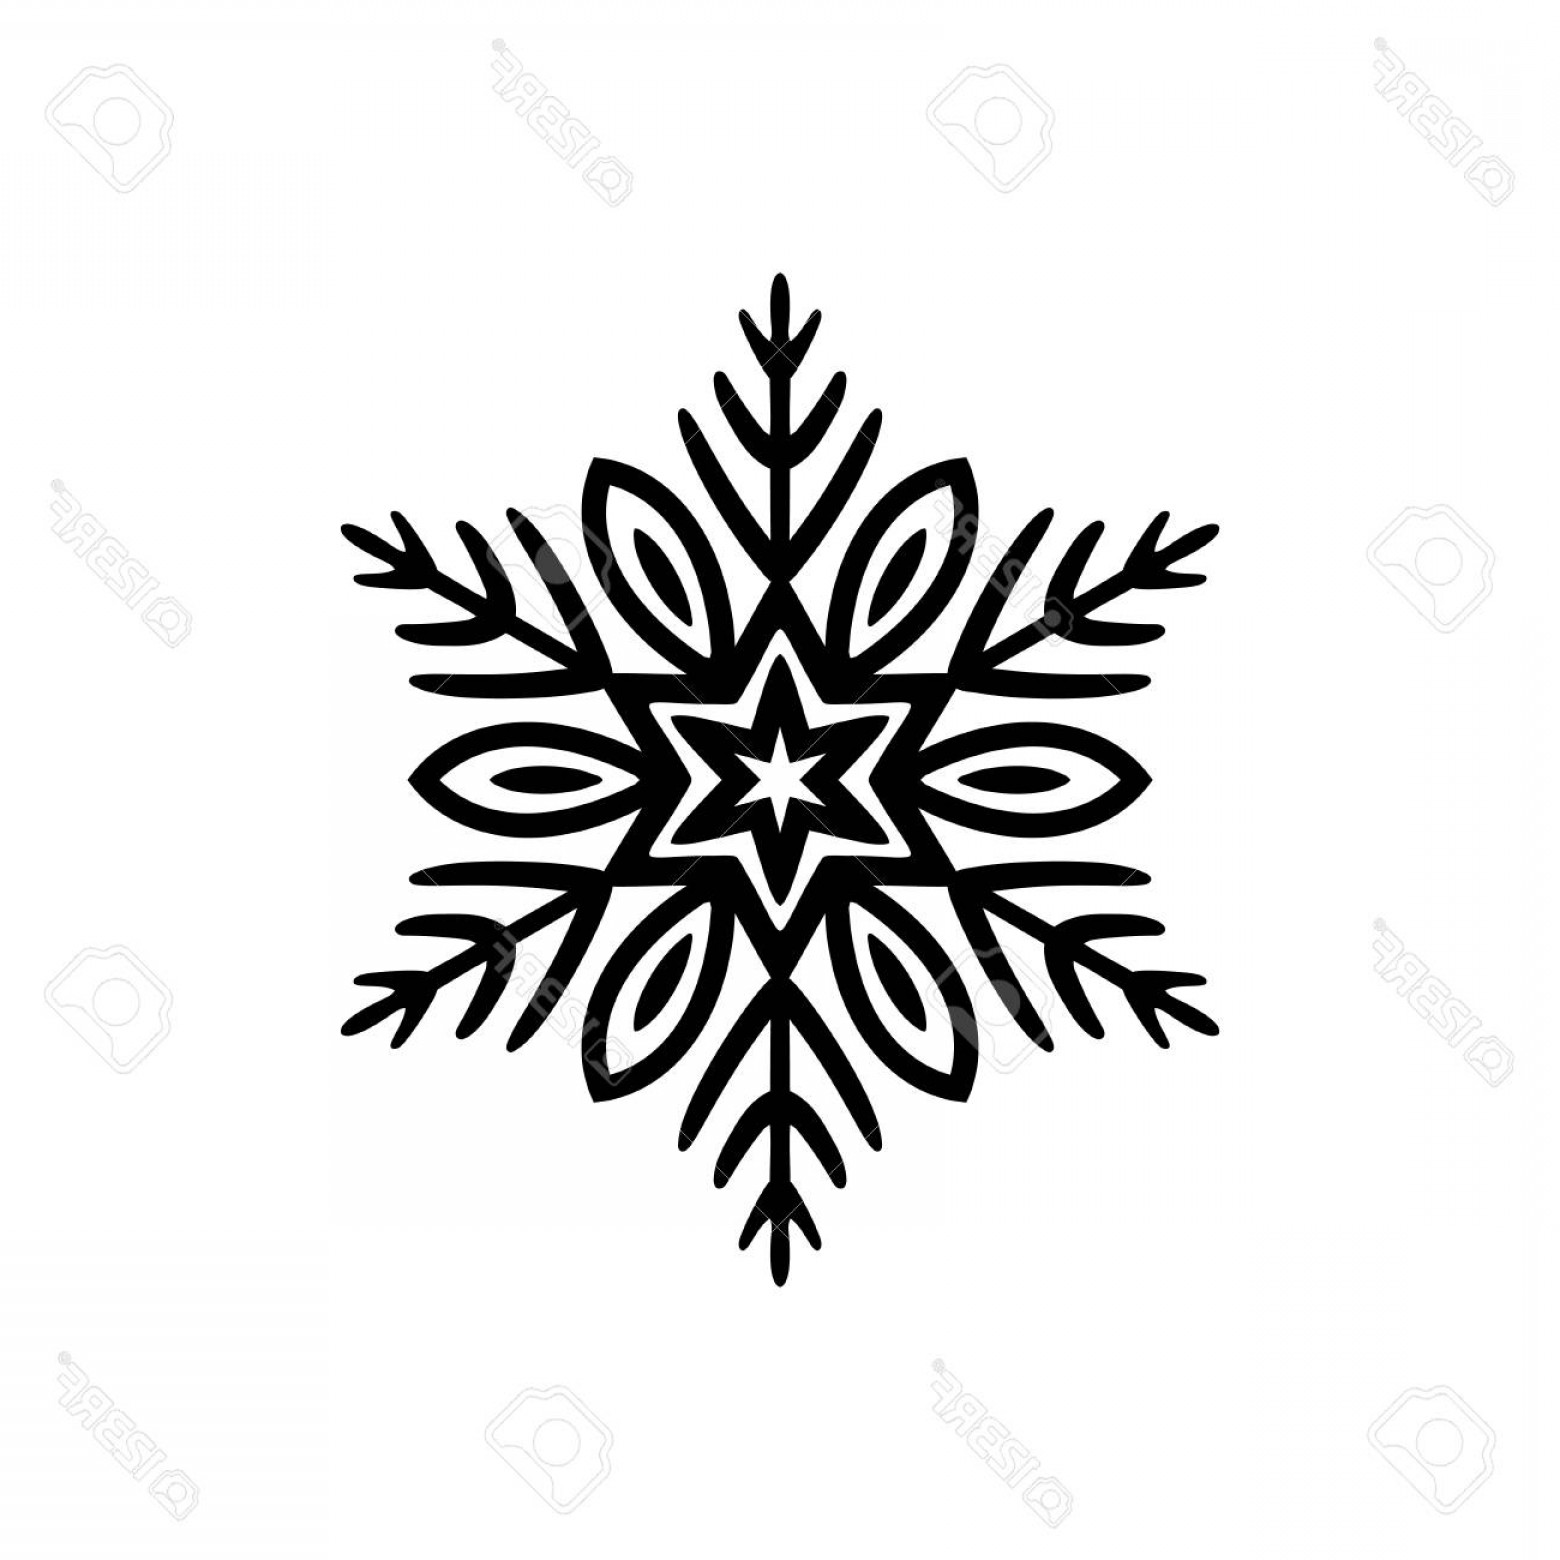 White Snowflake Vector Art: Photostock Vector Free Hand Icon Of A Snowflake Simple Black Vector Illustration On White Background